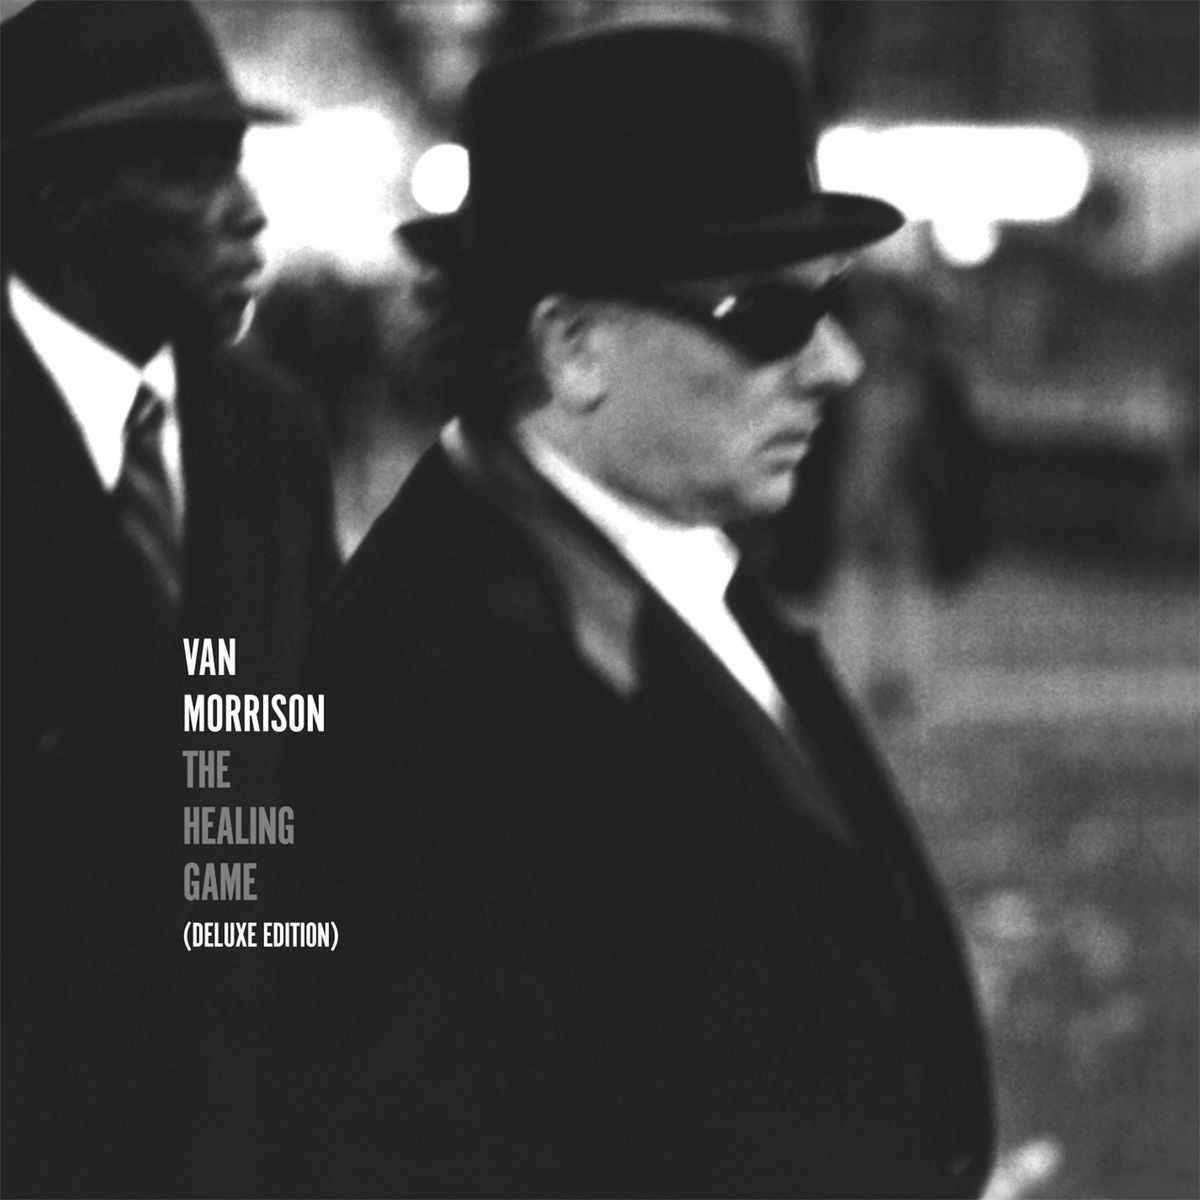 Van Morrison - The Healing Game (20th Anniversary Deluxe Edition) CD - 88985428402